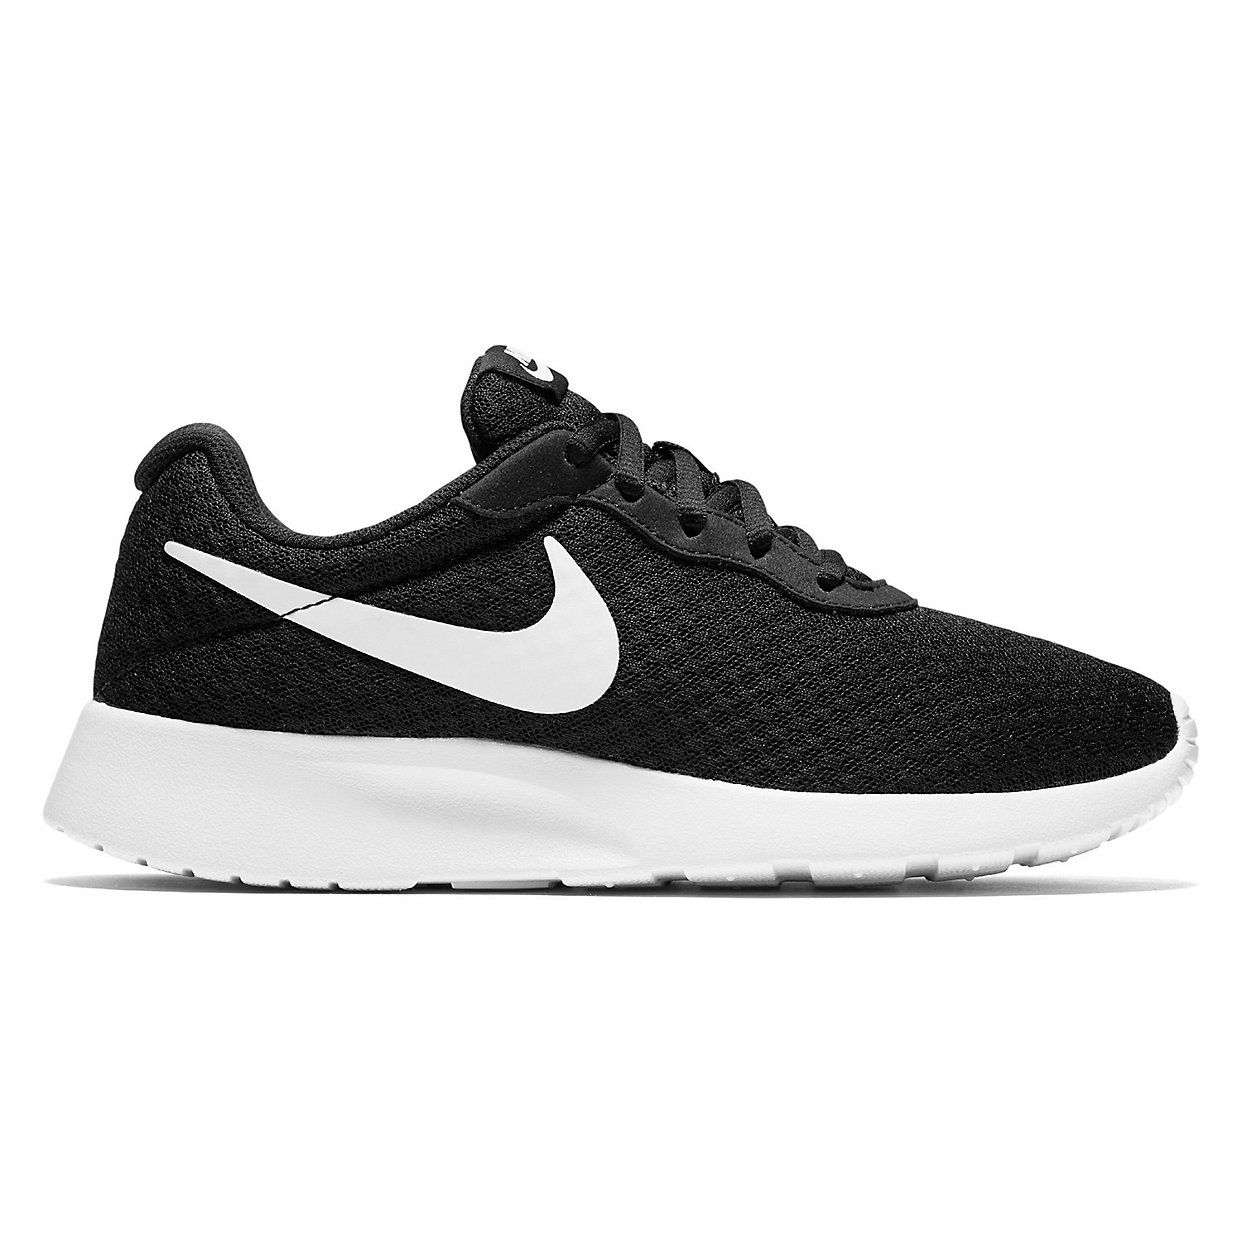 Womens athletic shoes, Nike shoes